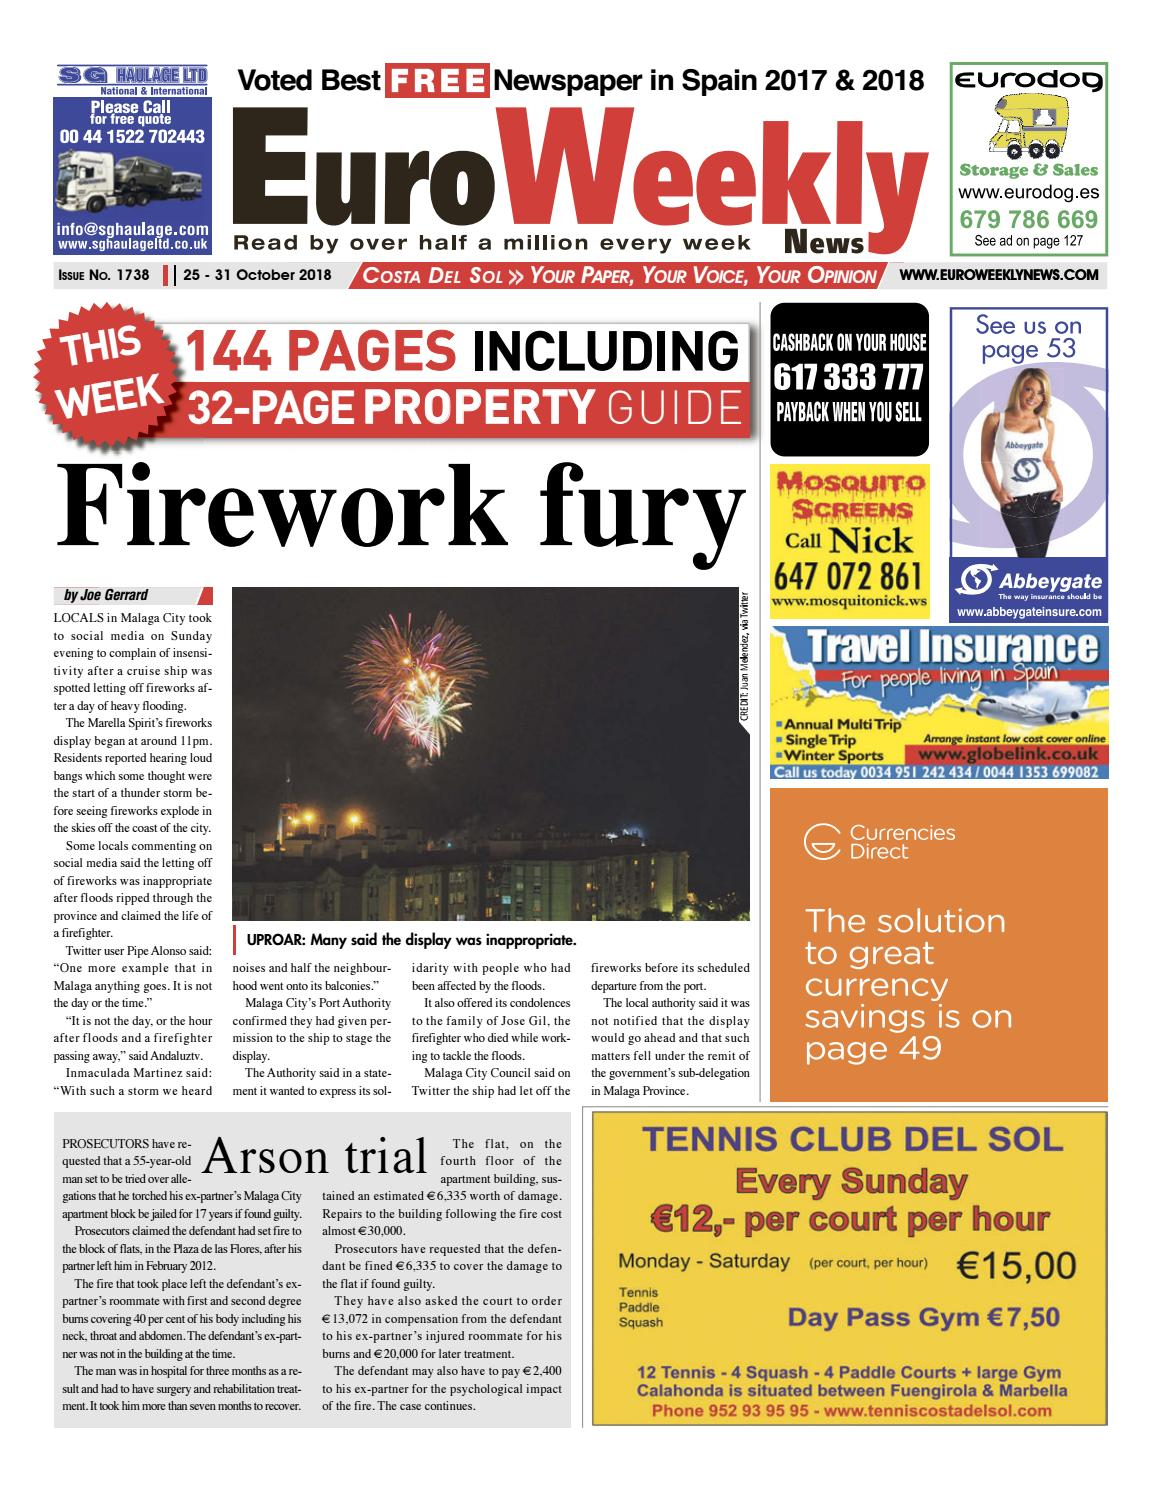 Euro Weekly News - Costa del Sol October 25 - 31 2018 Issue 1738 by Euro  Weekly News Media S.A. - issuu 52bfb74ff334a